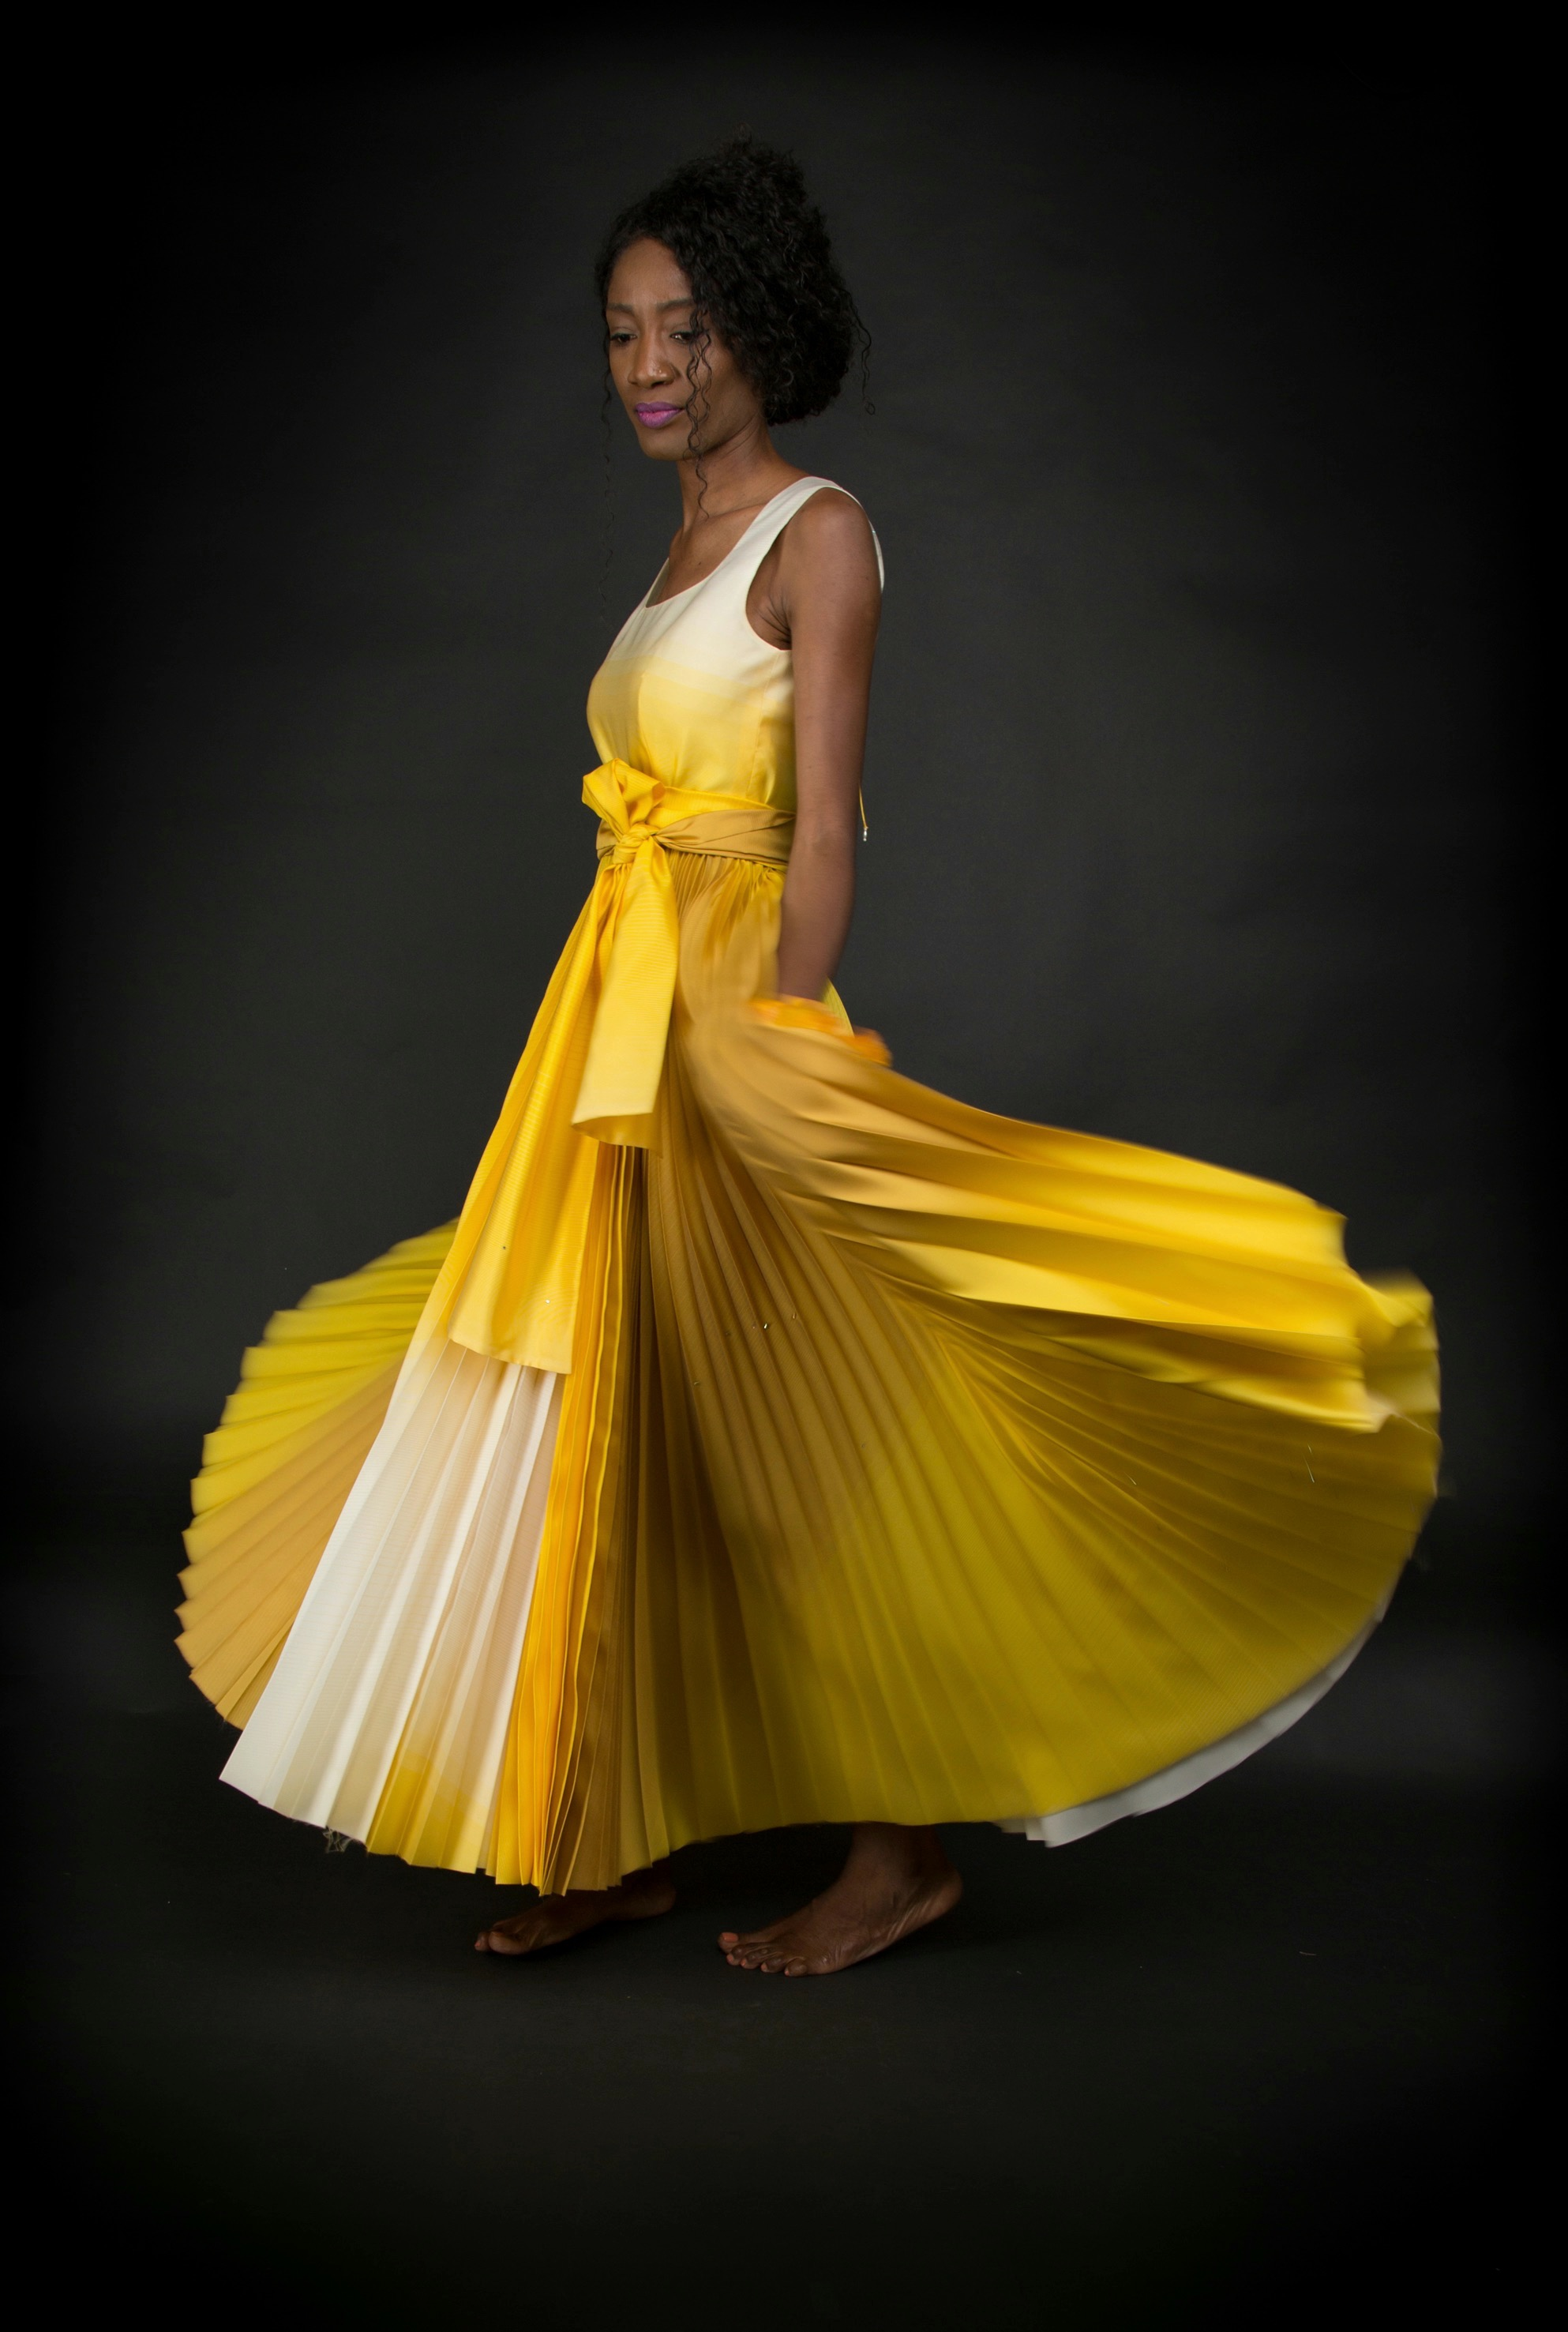 haute couture photoshoot Margret Gasper silk evening dress